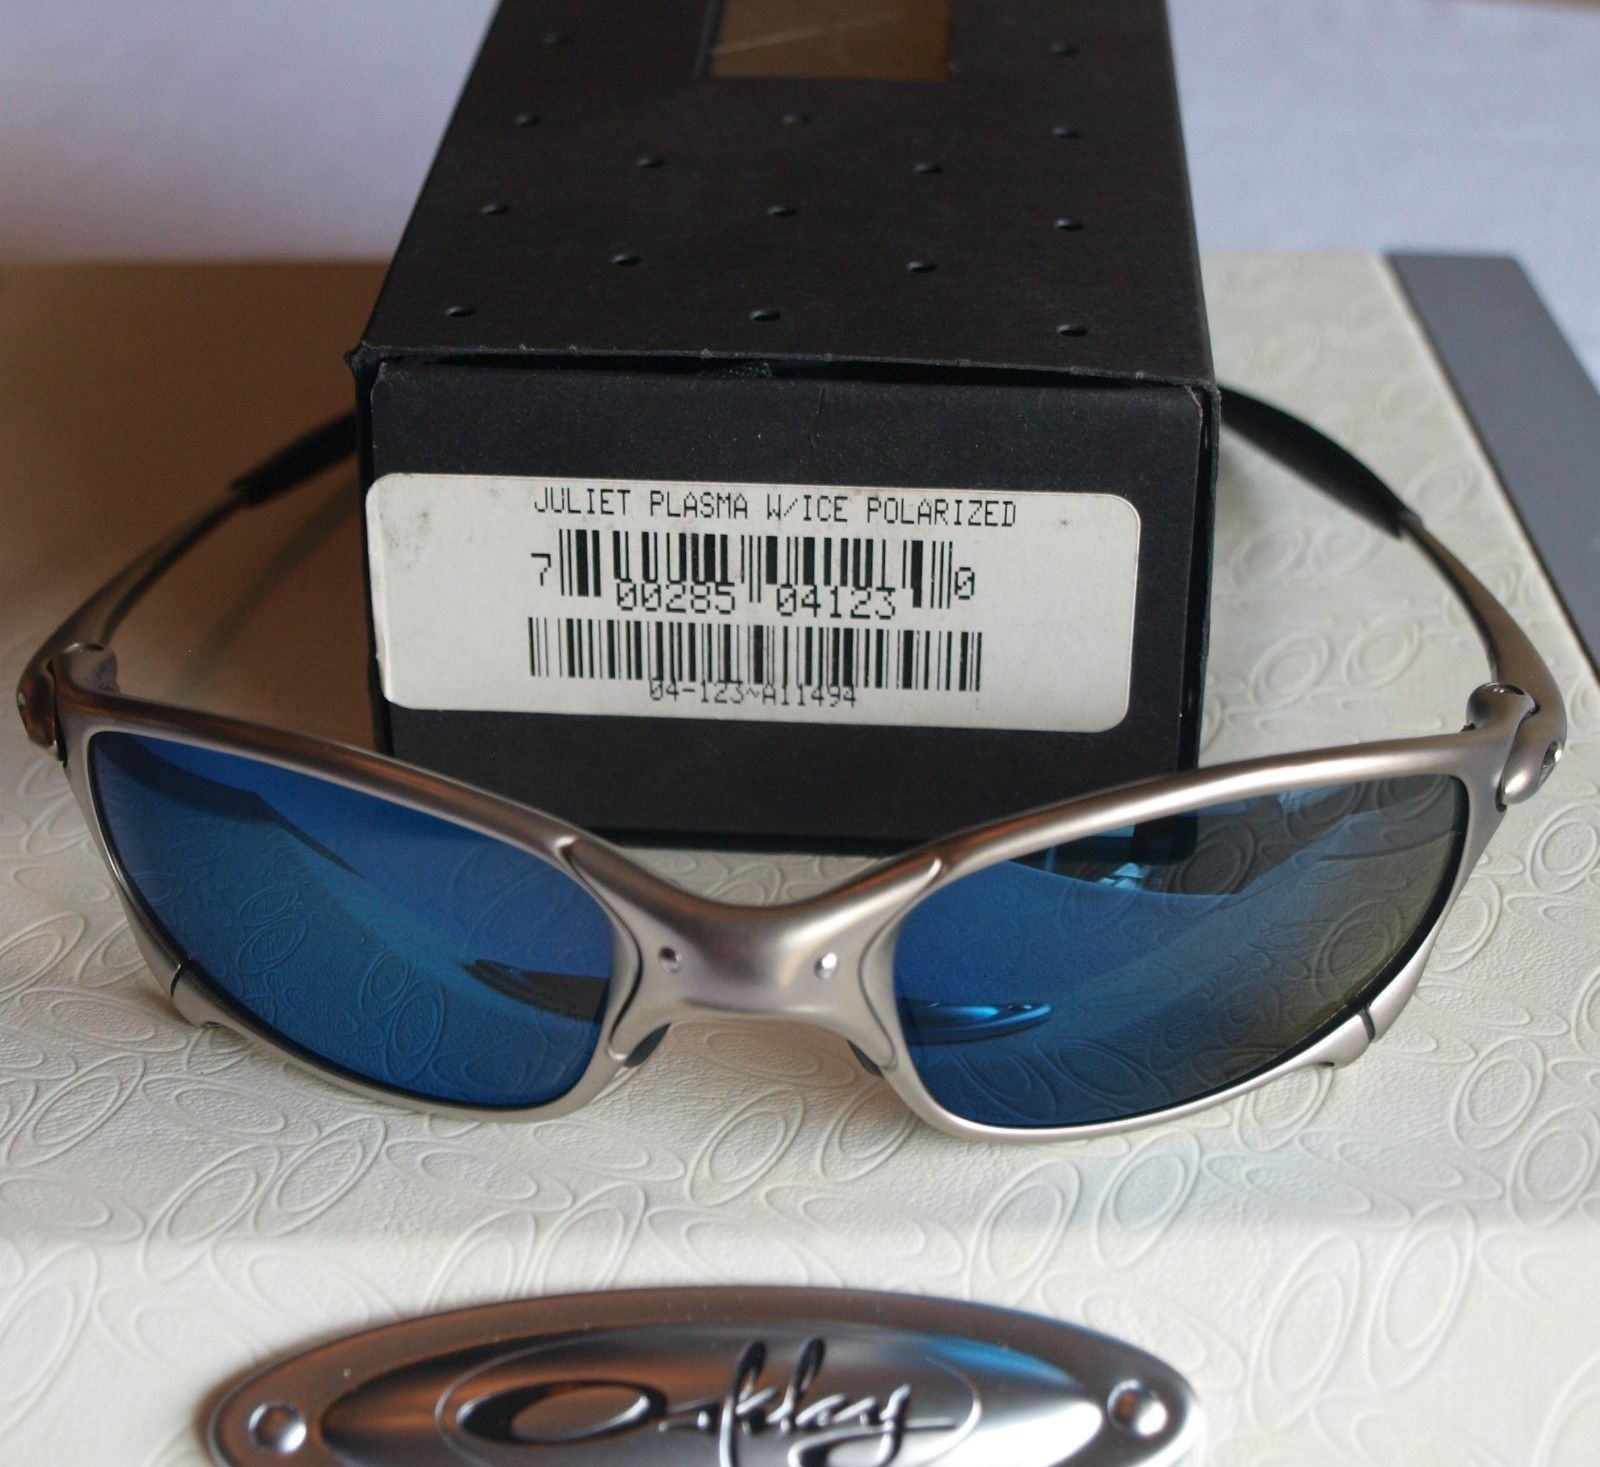 OAKLEY Juliet ? PLASMA ICE Polarized ? VINTAGE ? BNIB ? RARE Serial # Gen 2 For $370 - julietplasmaicepolar.jpg